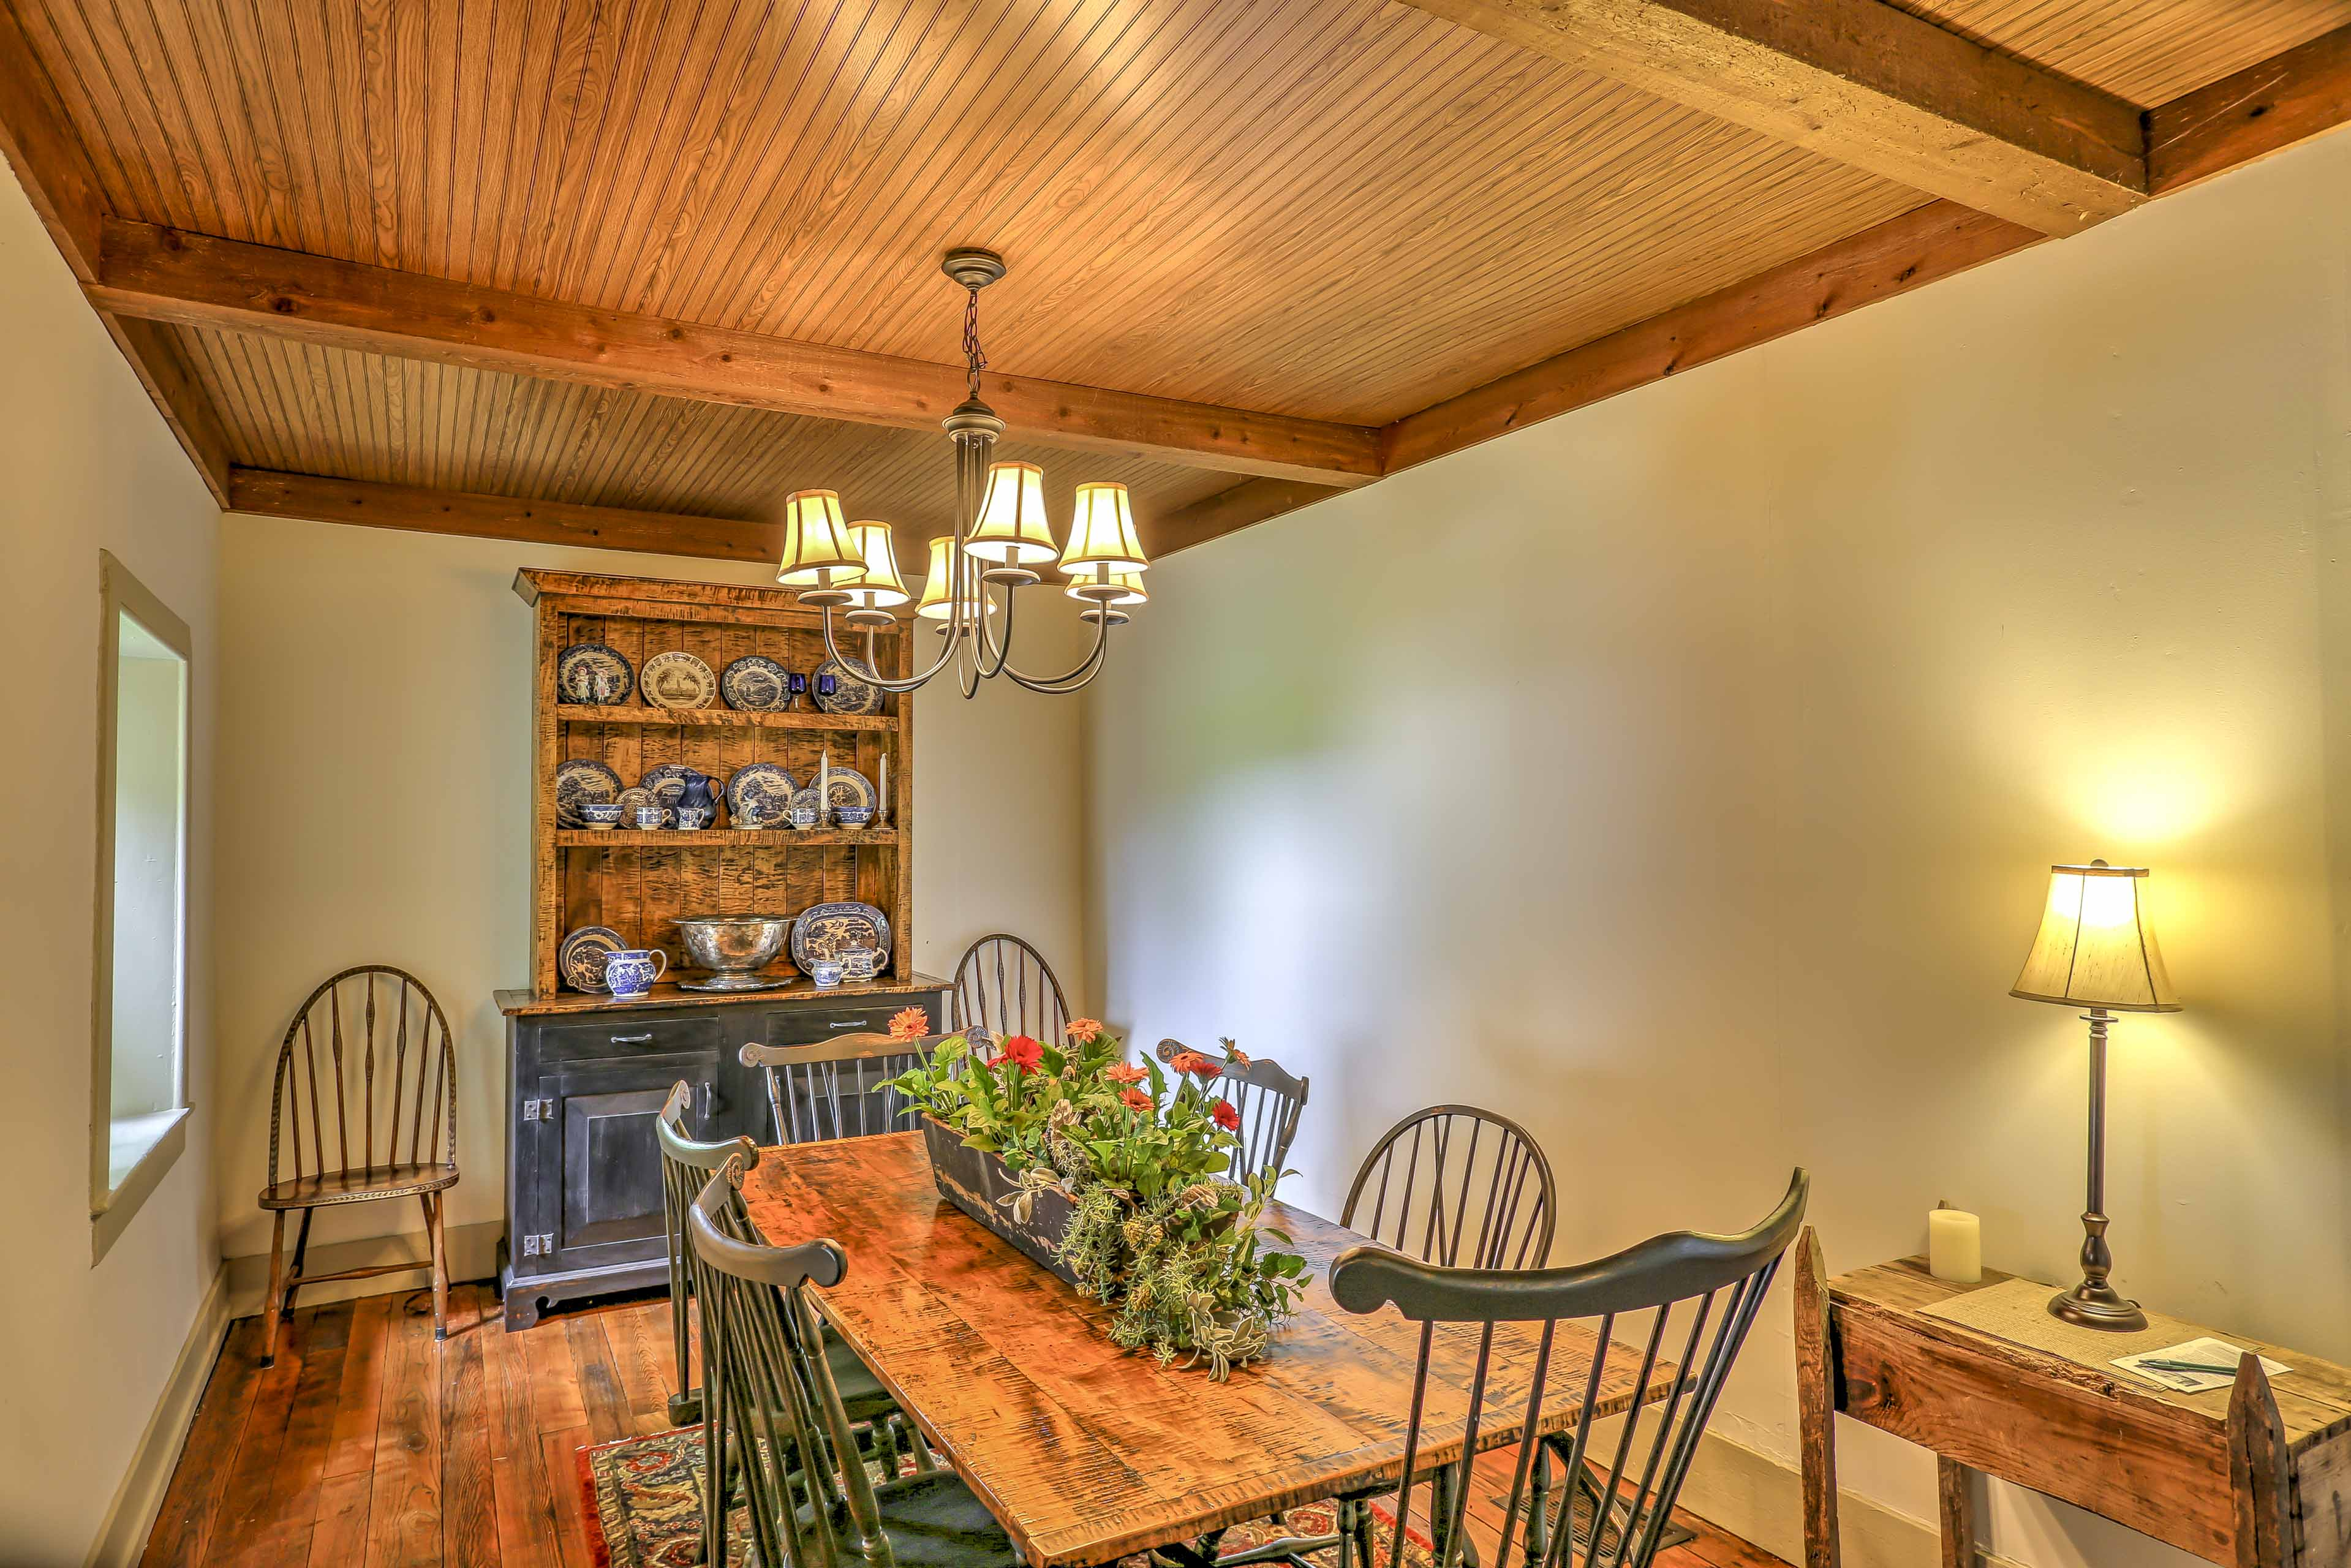 The formal dining room boasts an elegant finished-wood table with seating for 8 and a rustic china cabinet.